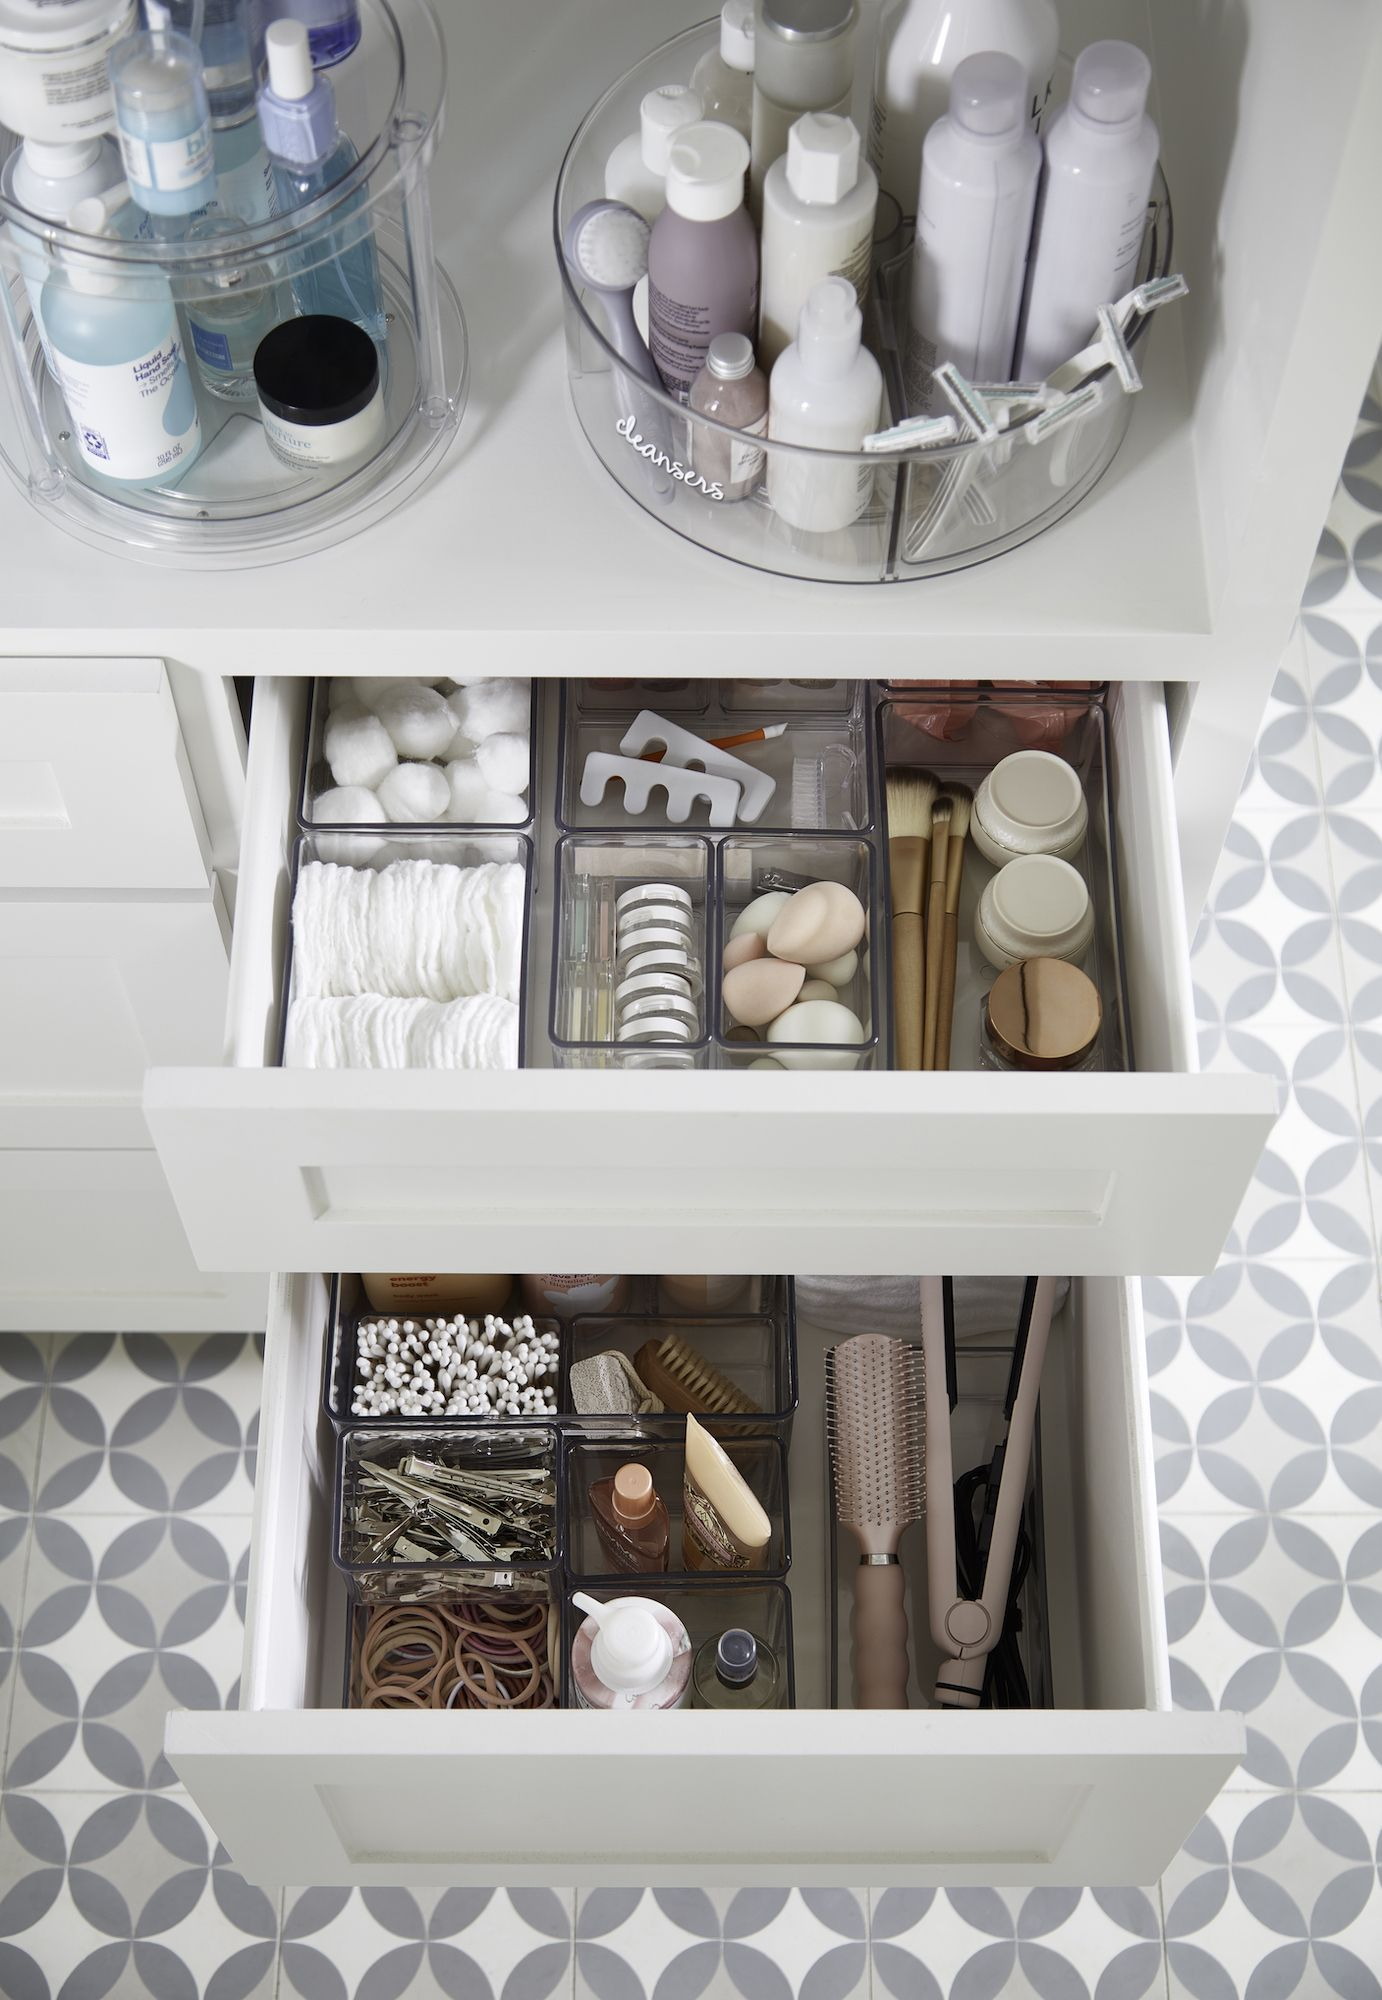 This Exclusive Container Store Collection Is A Marie Kondo Storage Dream Bathroom Organisation The Home Edit Home Organization